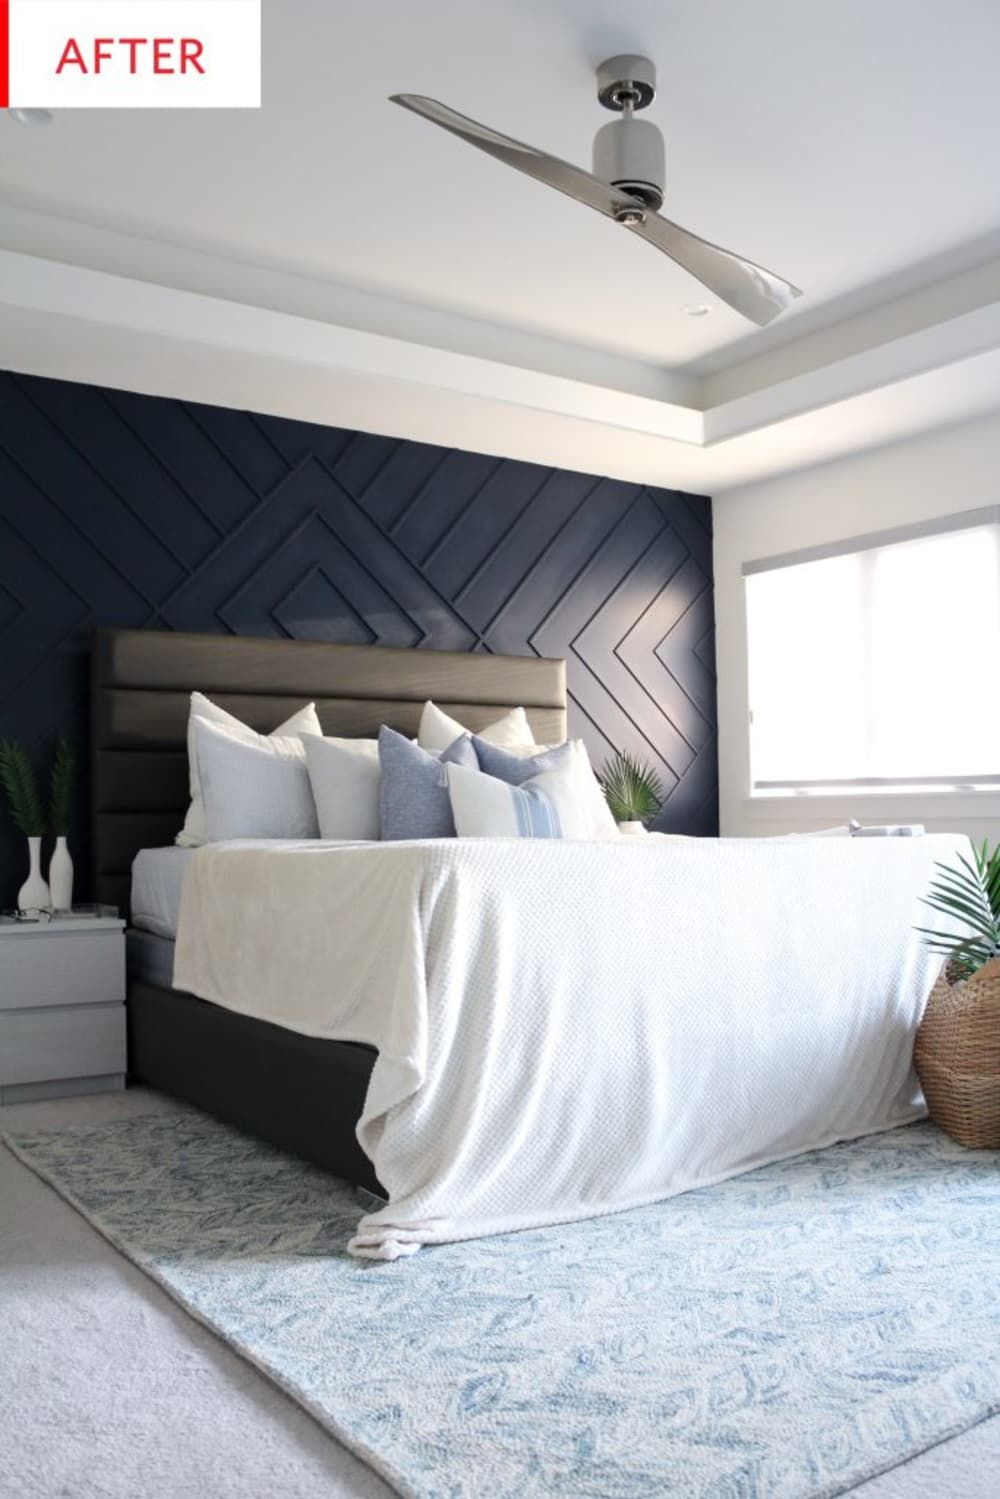 Before And After A 180 Feature Wall Transforms A Master Bedroom Feature Wall Bedroom Master Bedroom Makeover Coastal Master Bedroom